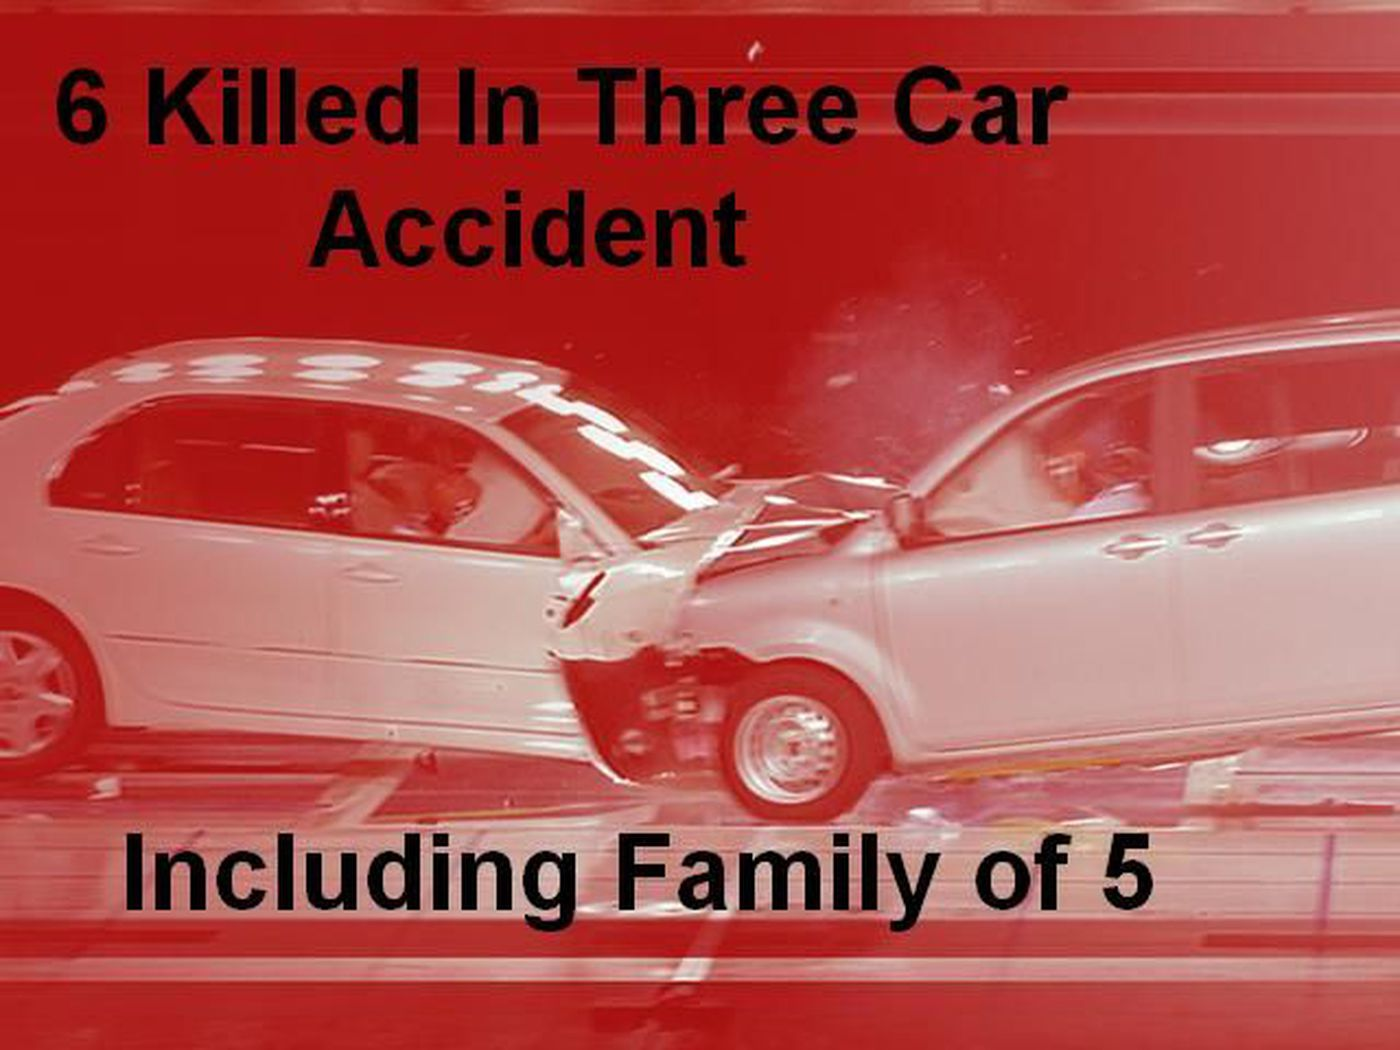 Three Car Accident Kills 6 - Including Family of 5